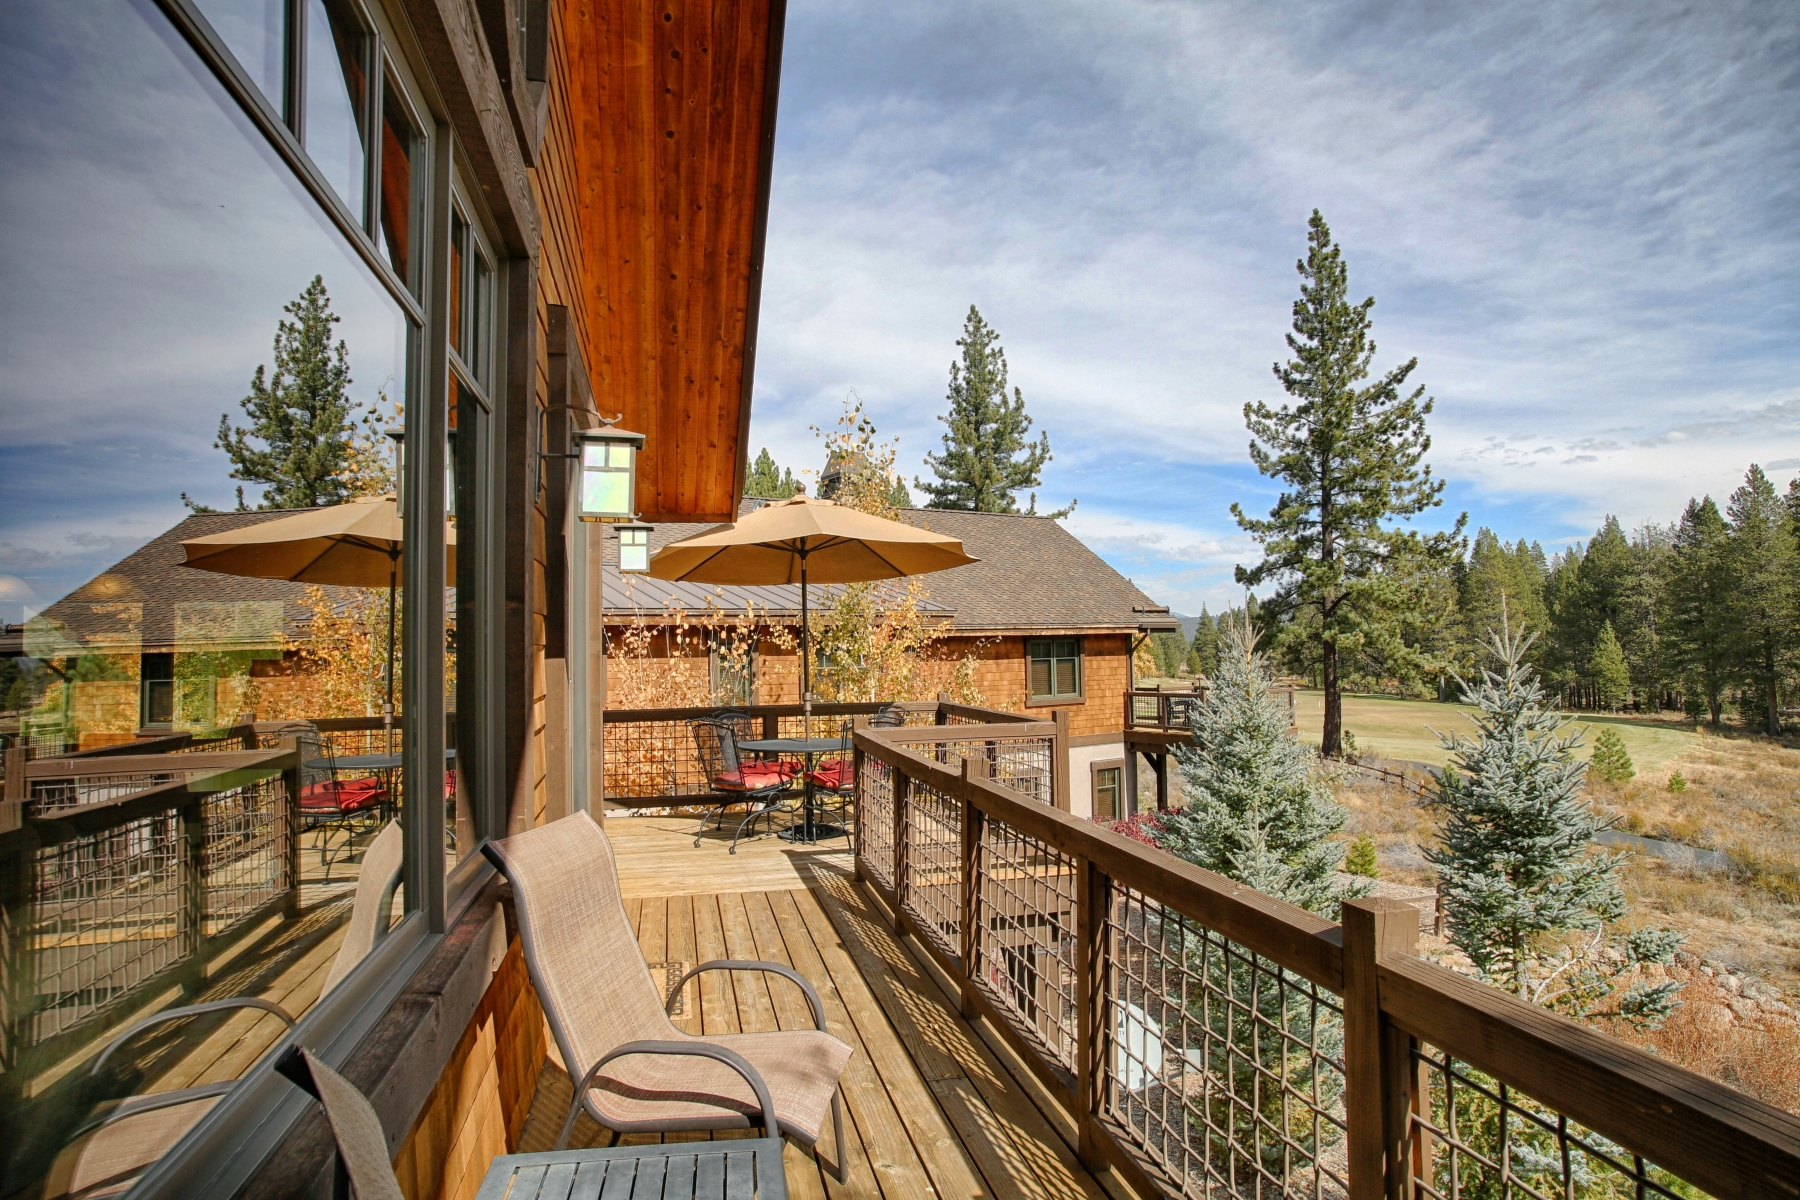 Additional photo for property listing at 10201 Annies Loop #B4, Truckee, CA 10201 Annie's Loop B4 Truckee, California 96161 United States